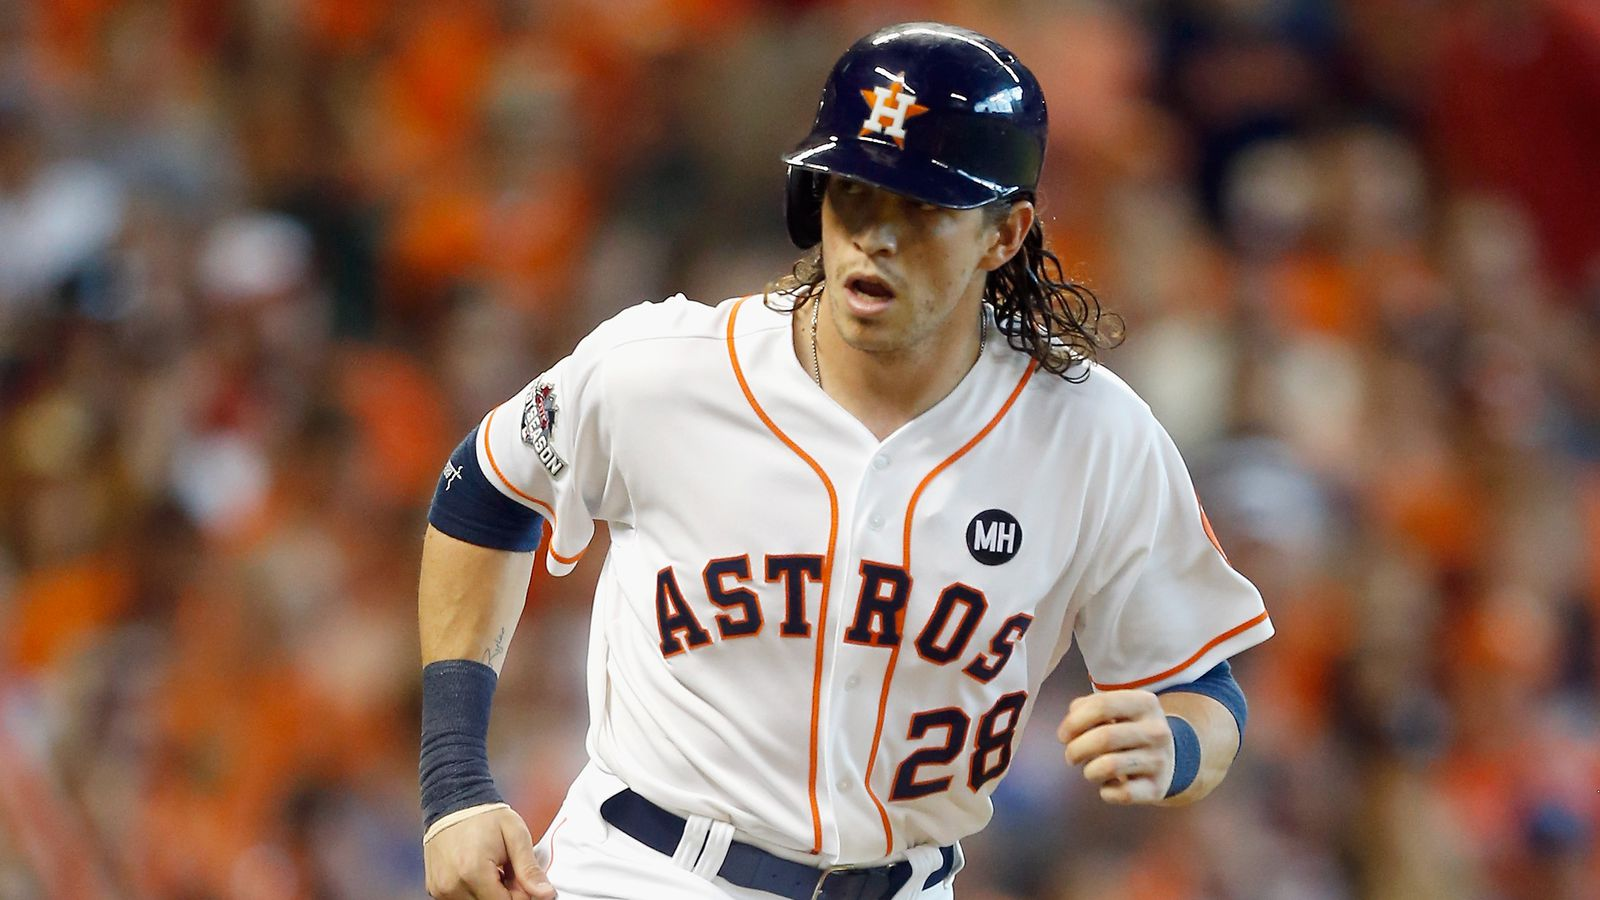 Colby Rasmus Hits Single Off Minute Maid Park Roof